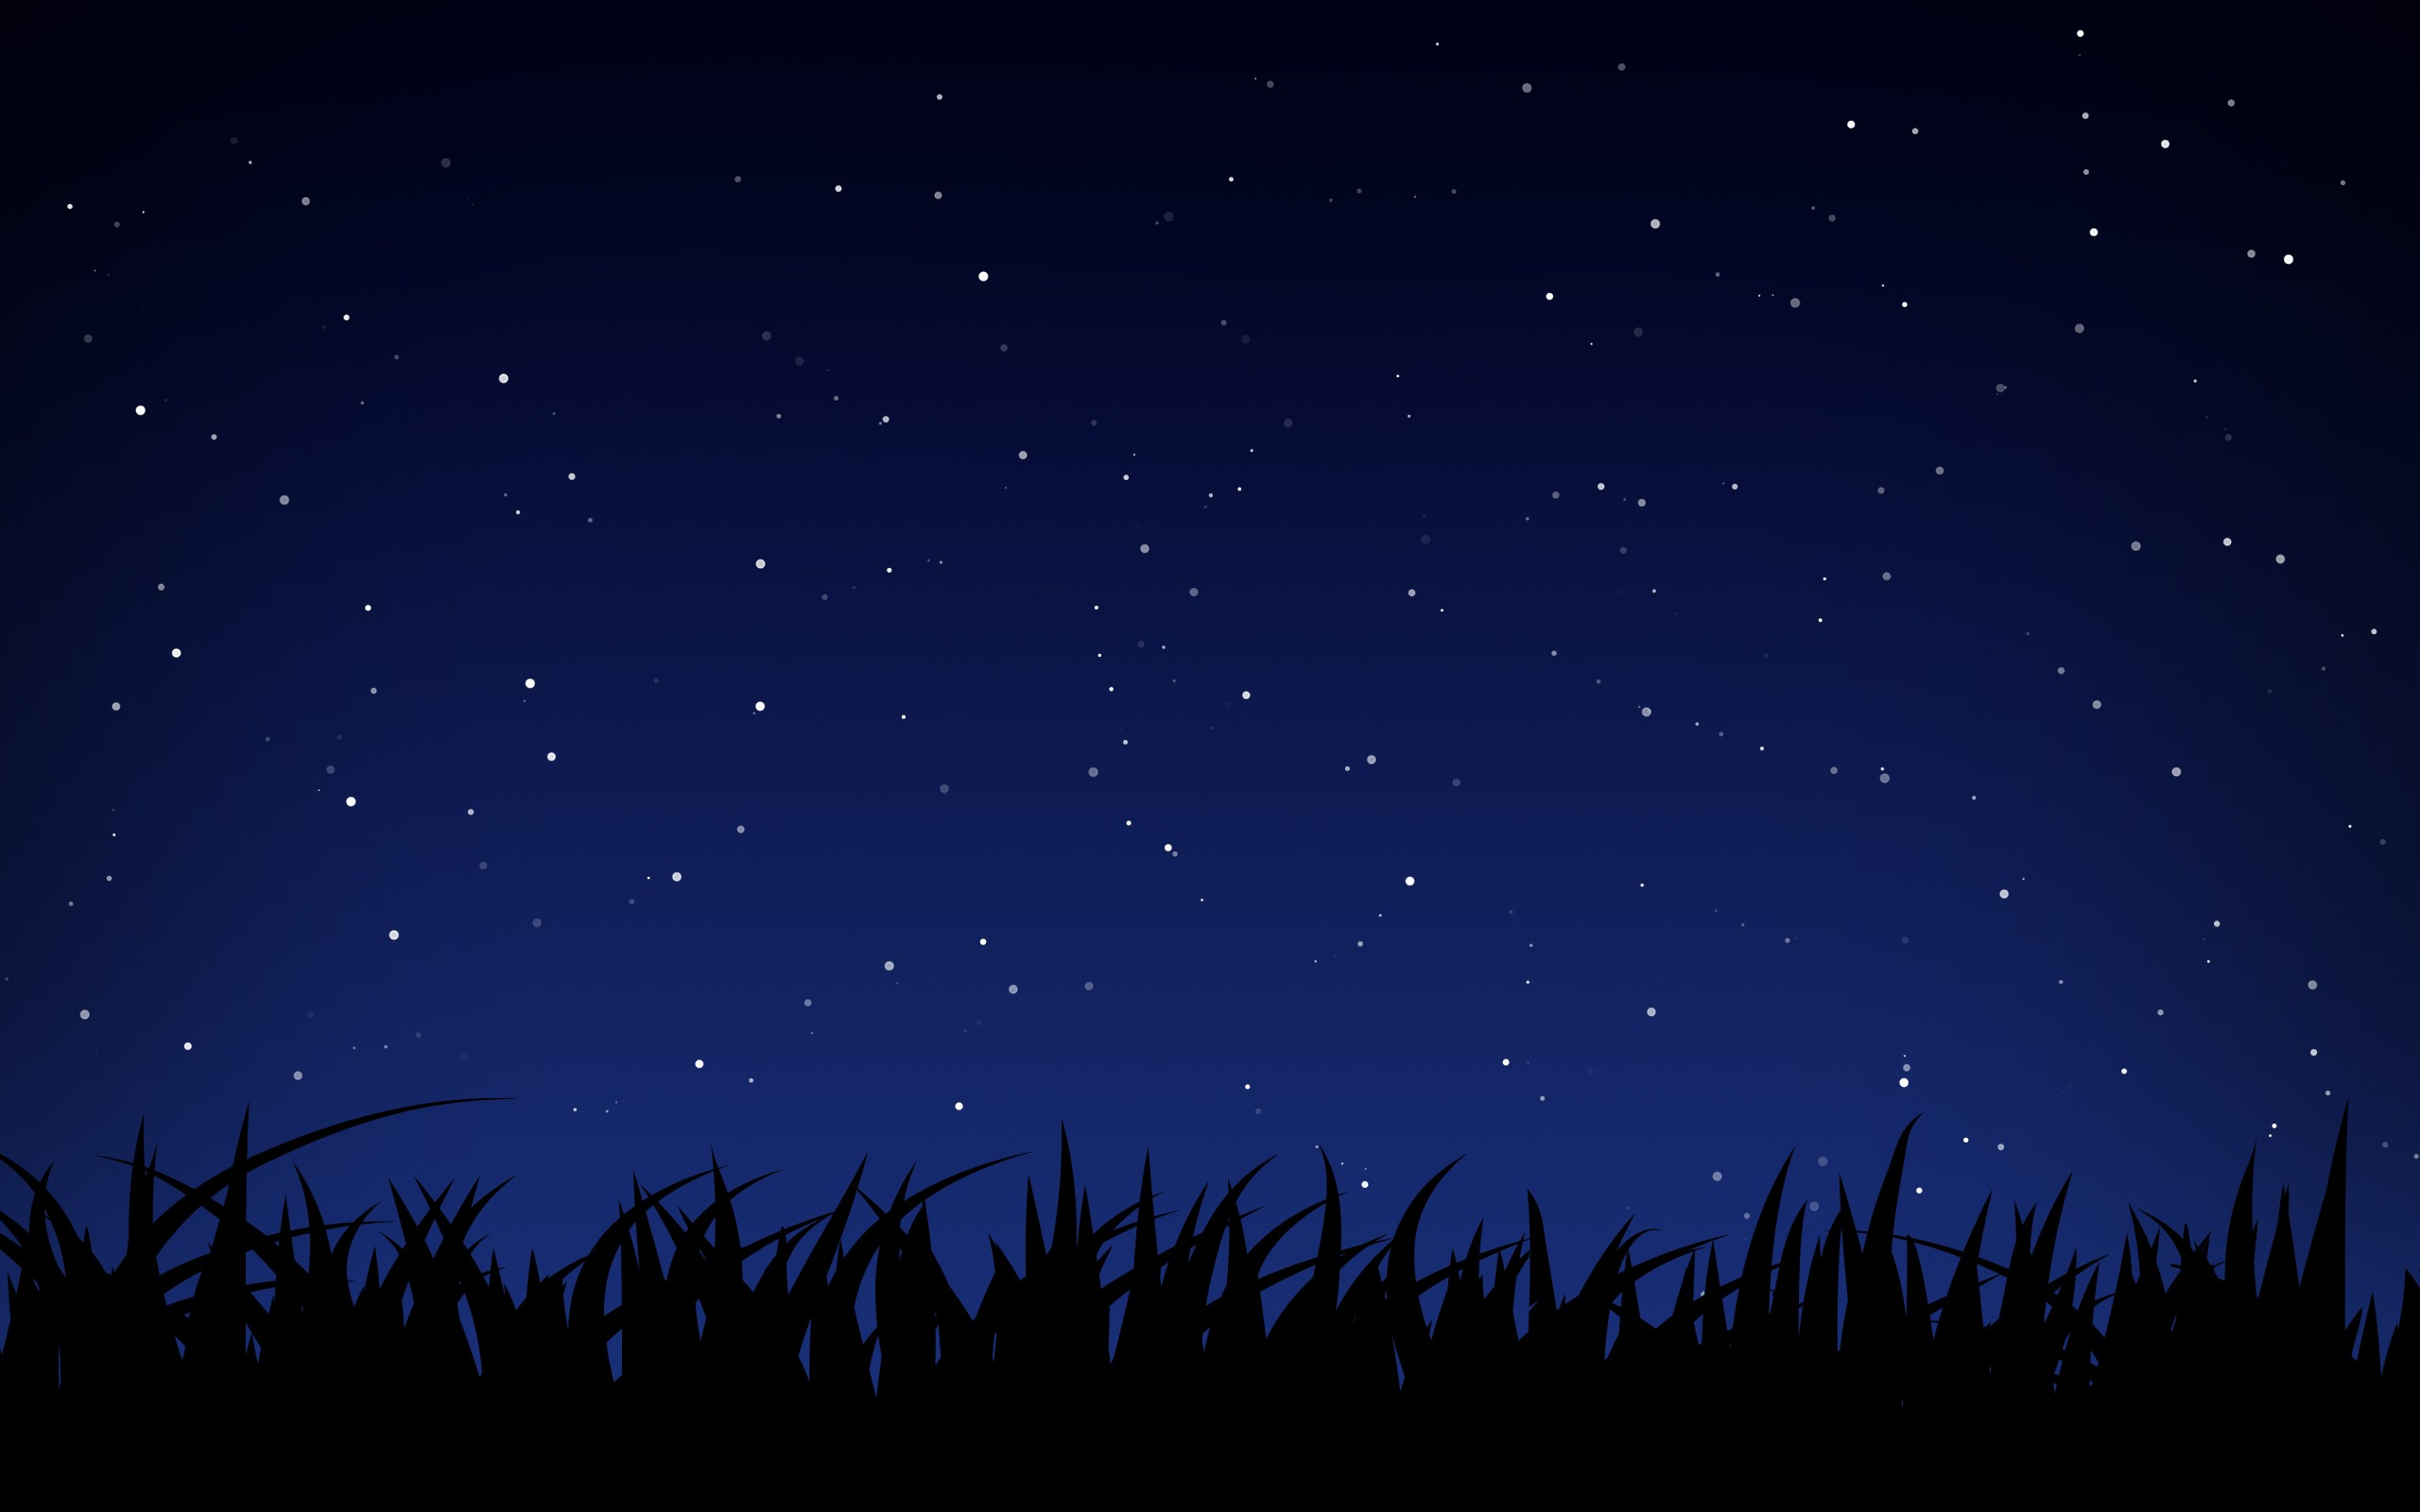 Starry Night HD Backgrounds 2560x1600